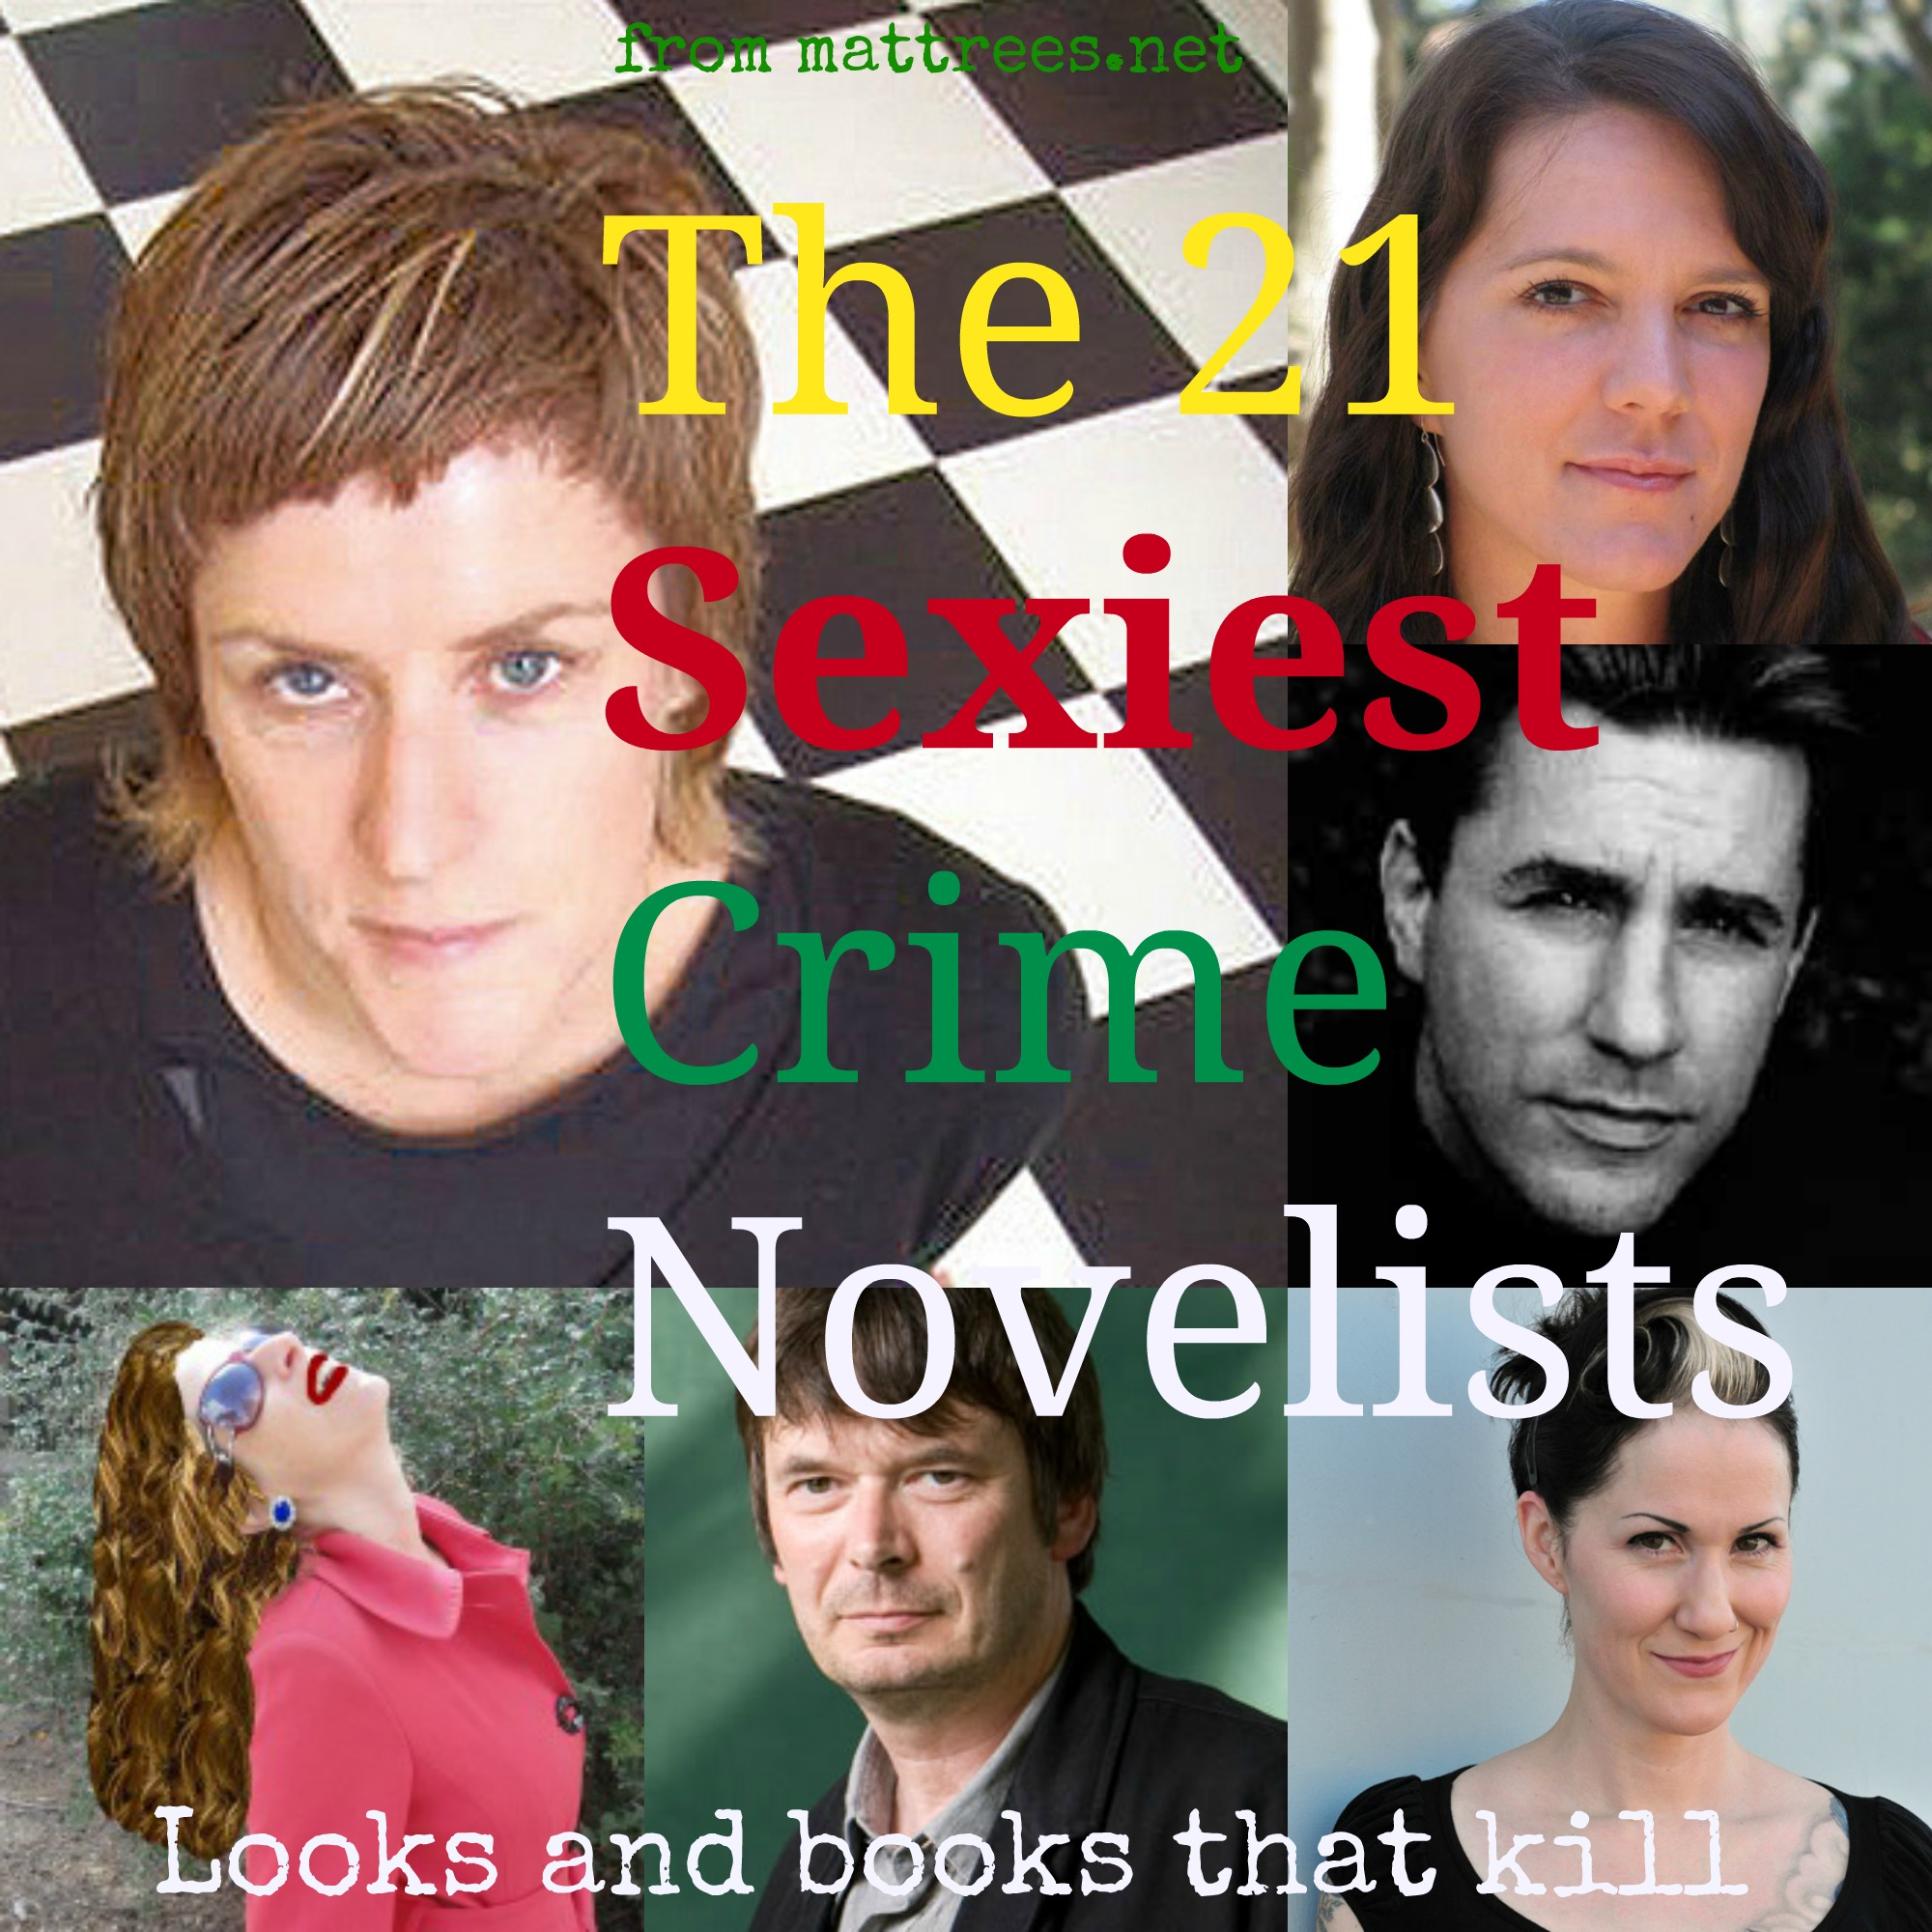 The 21 Sexiest Crime Novelists